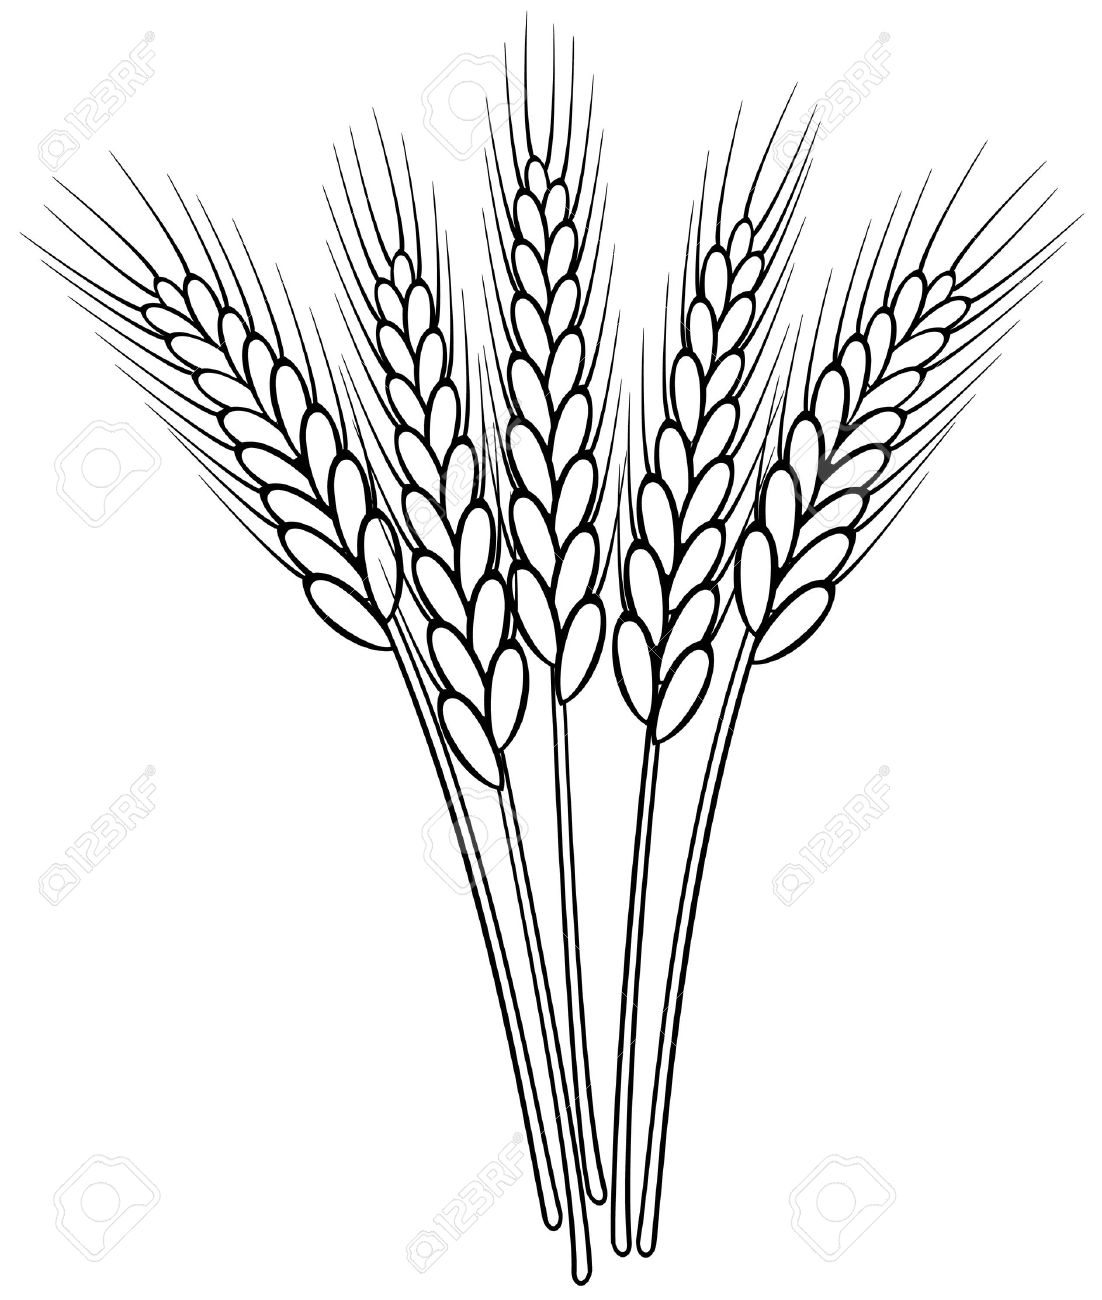 Wheat Plant Clipart Black And White.